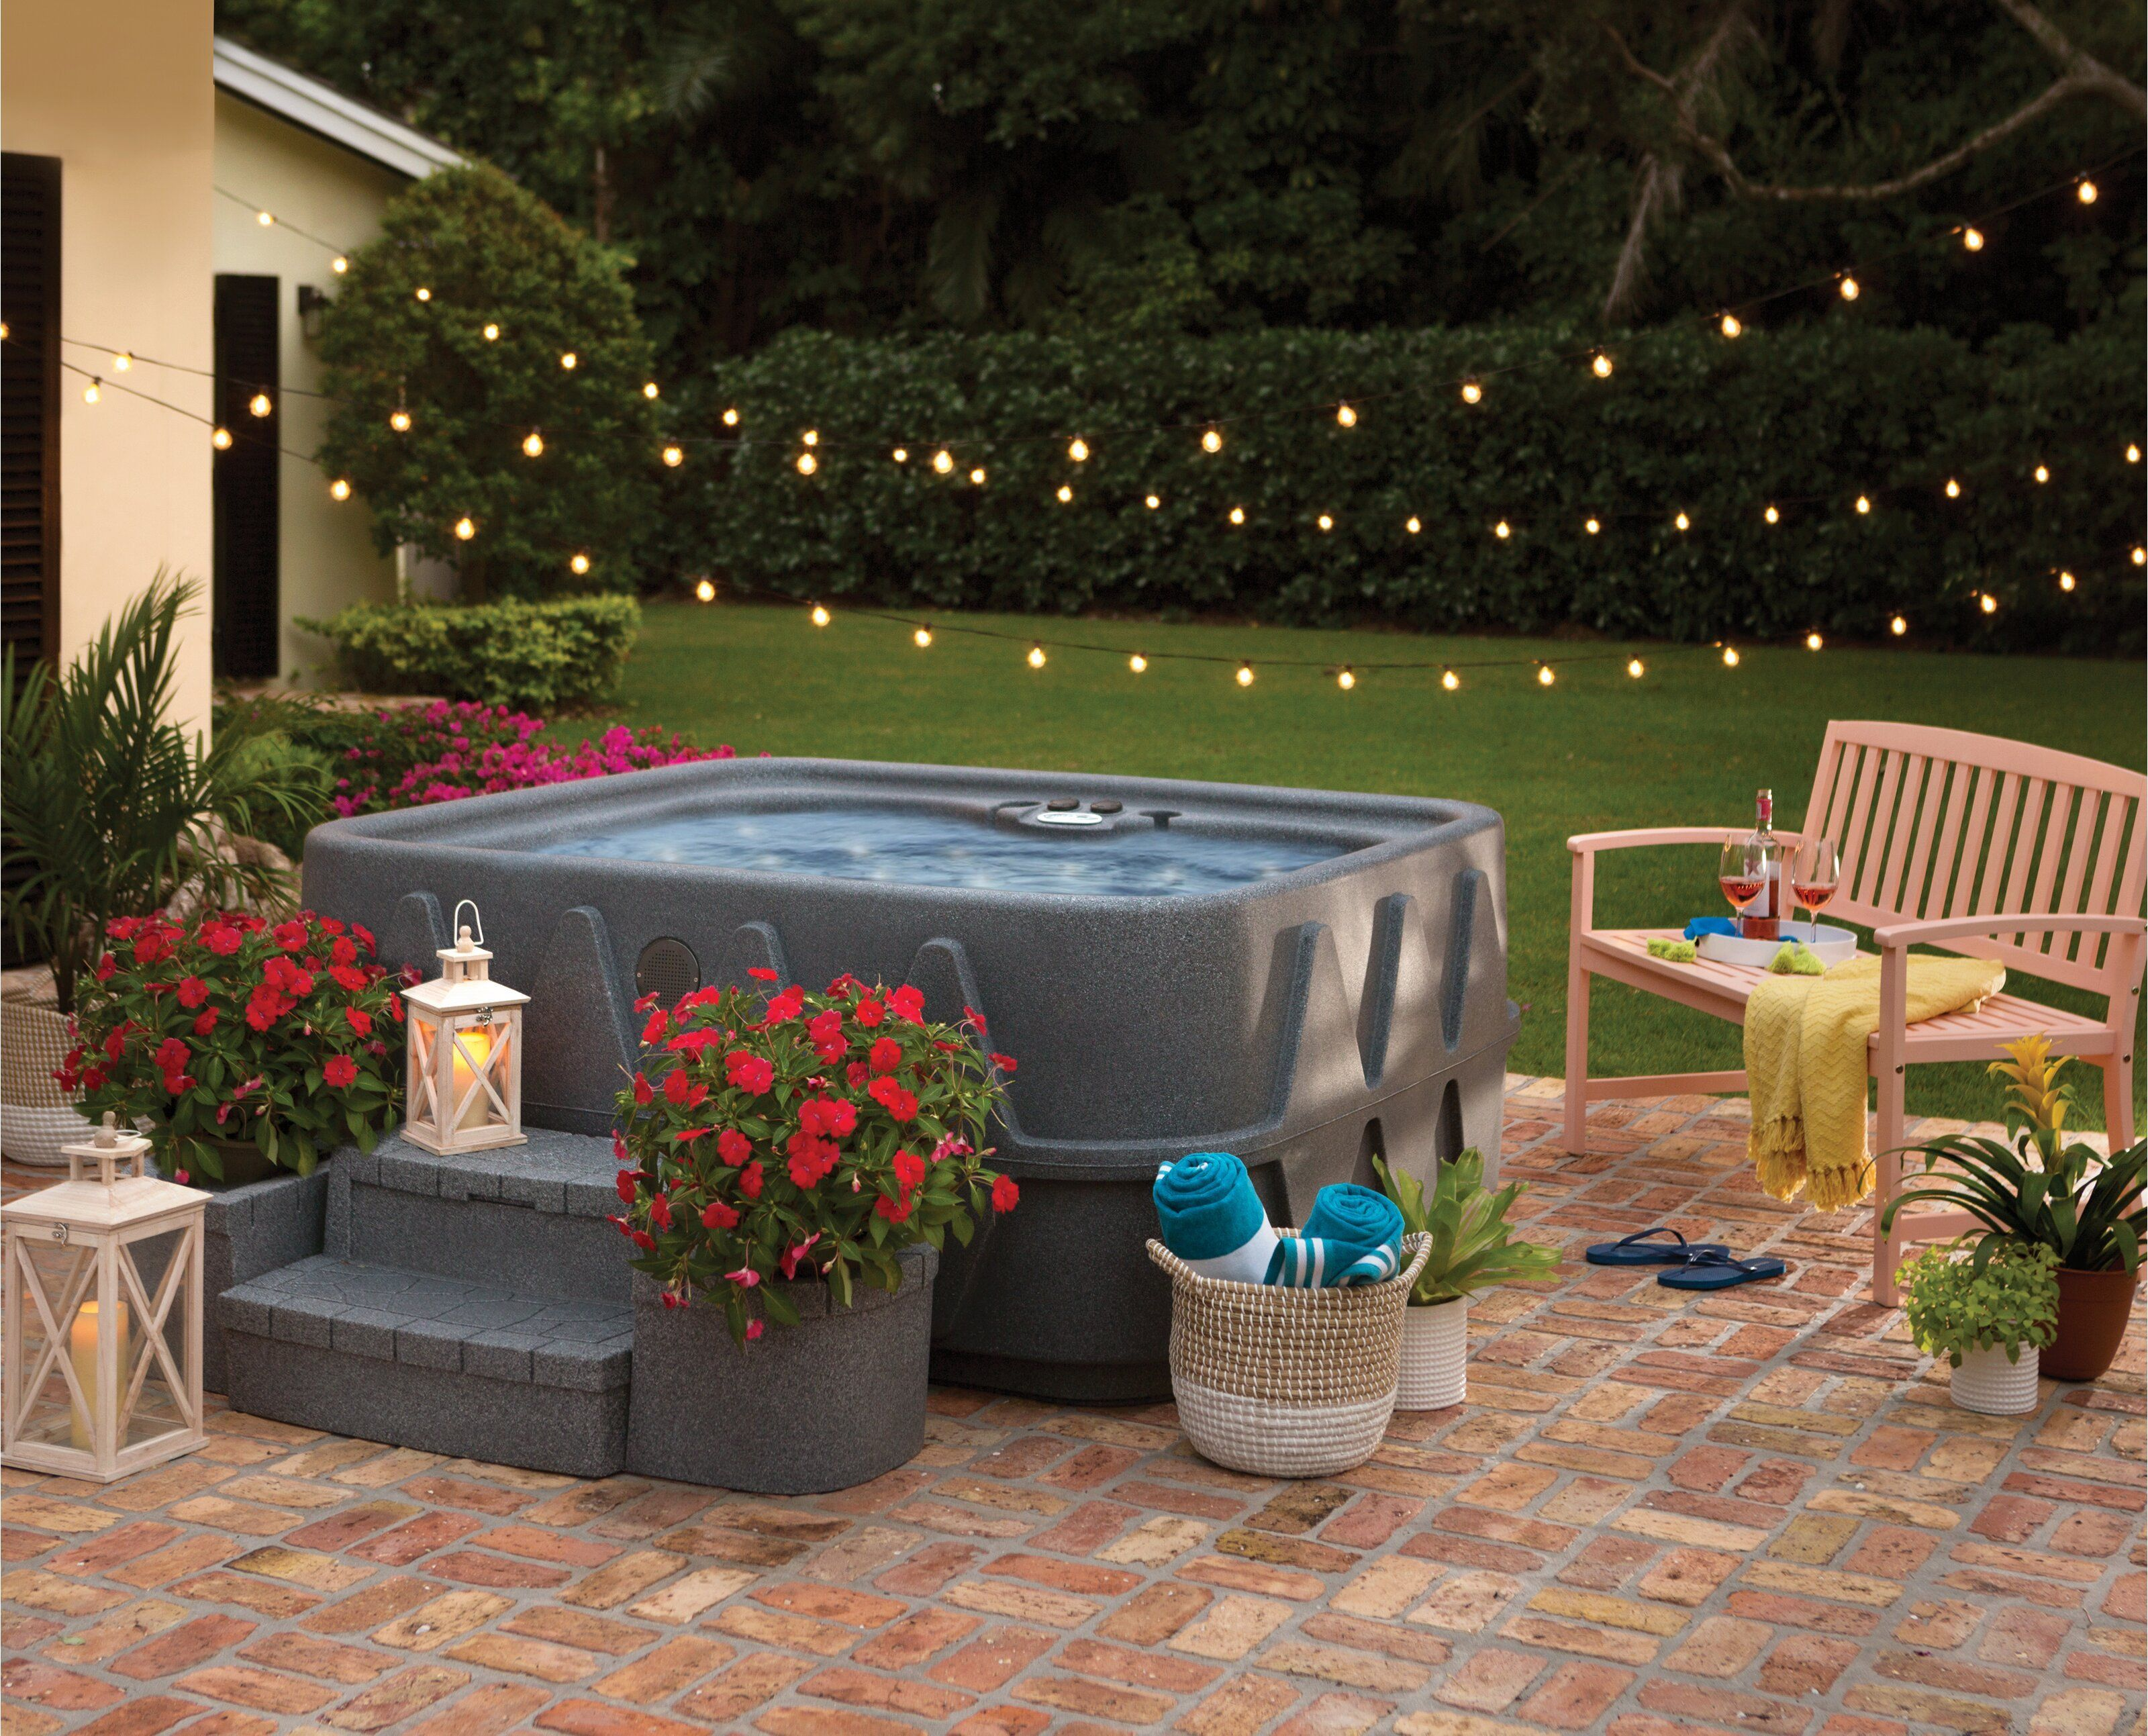 The 20 Best Hot Tubs in 20   Best Outdoor Hot Tubs for Home